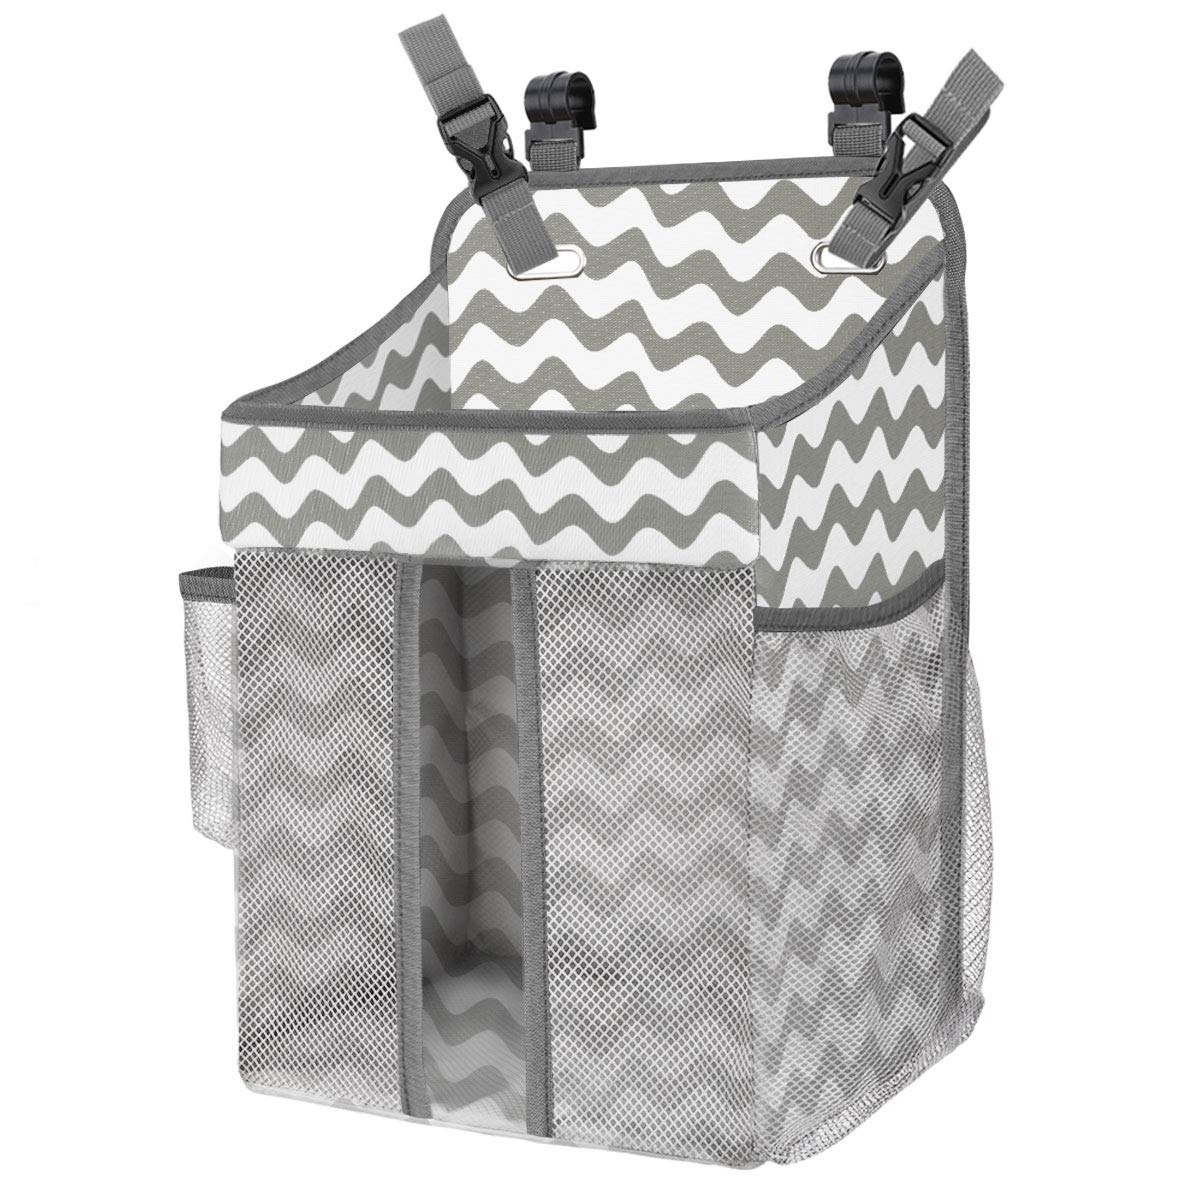 Zooawa Hanging Crib Organizer, Large Capacity Hanging Diaper Caddy Nursery Bag Crib Diaper Organizer for Diapers Wipes Baby Essentials Storage - Gray & White Stripe